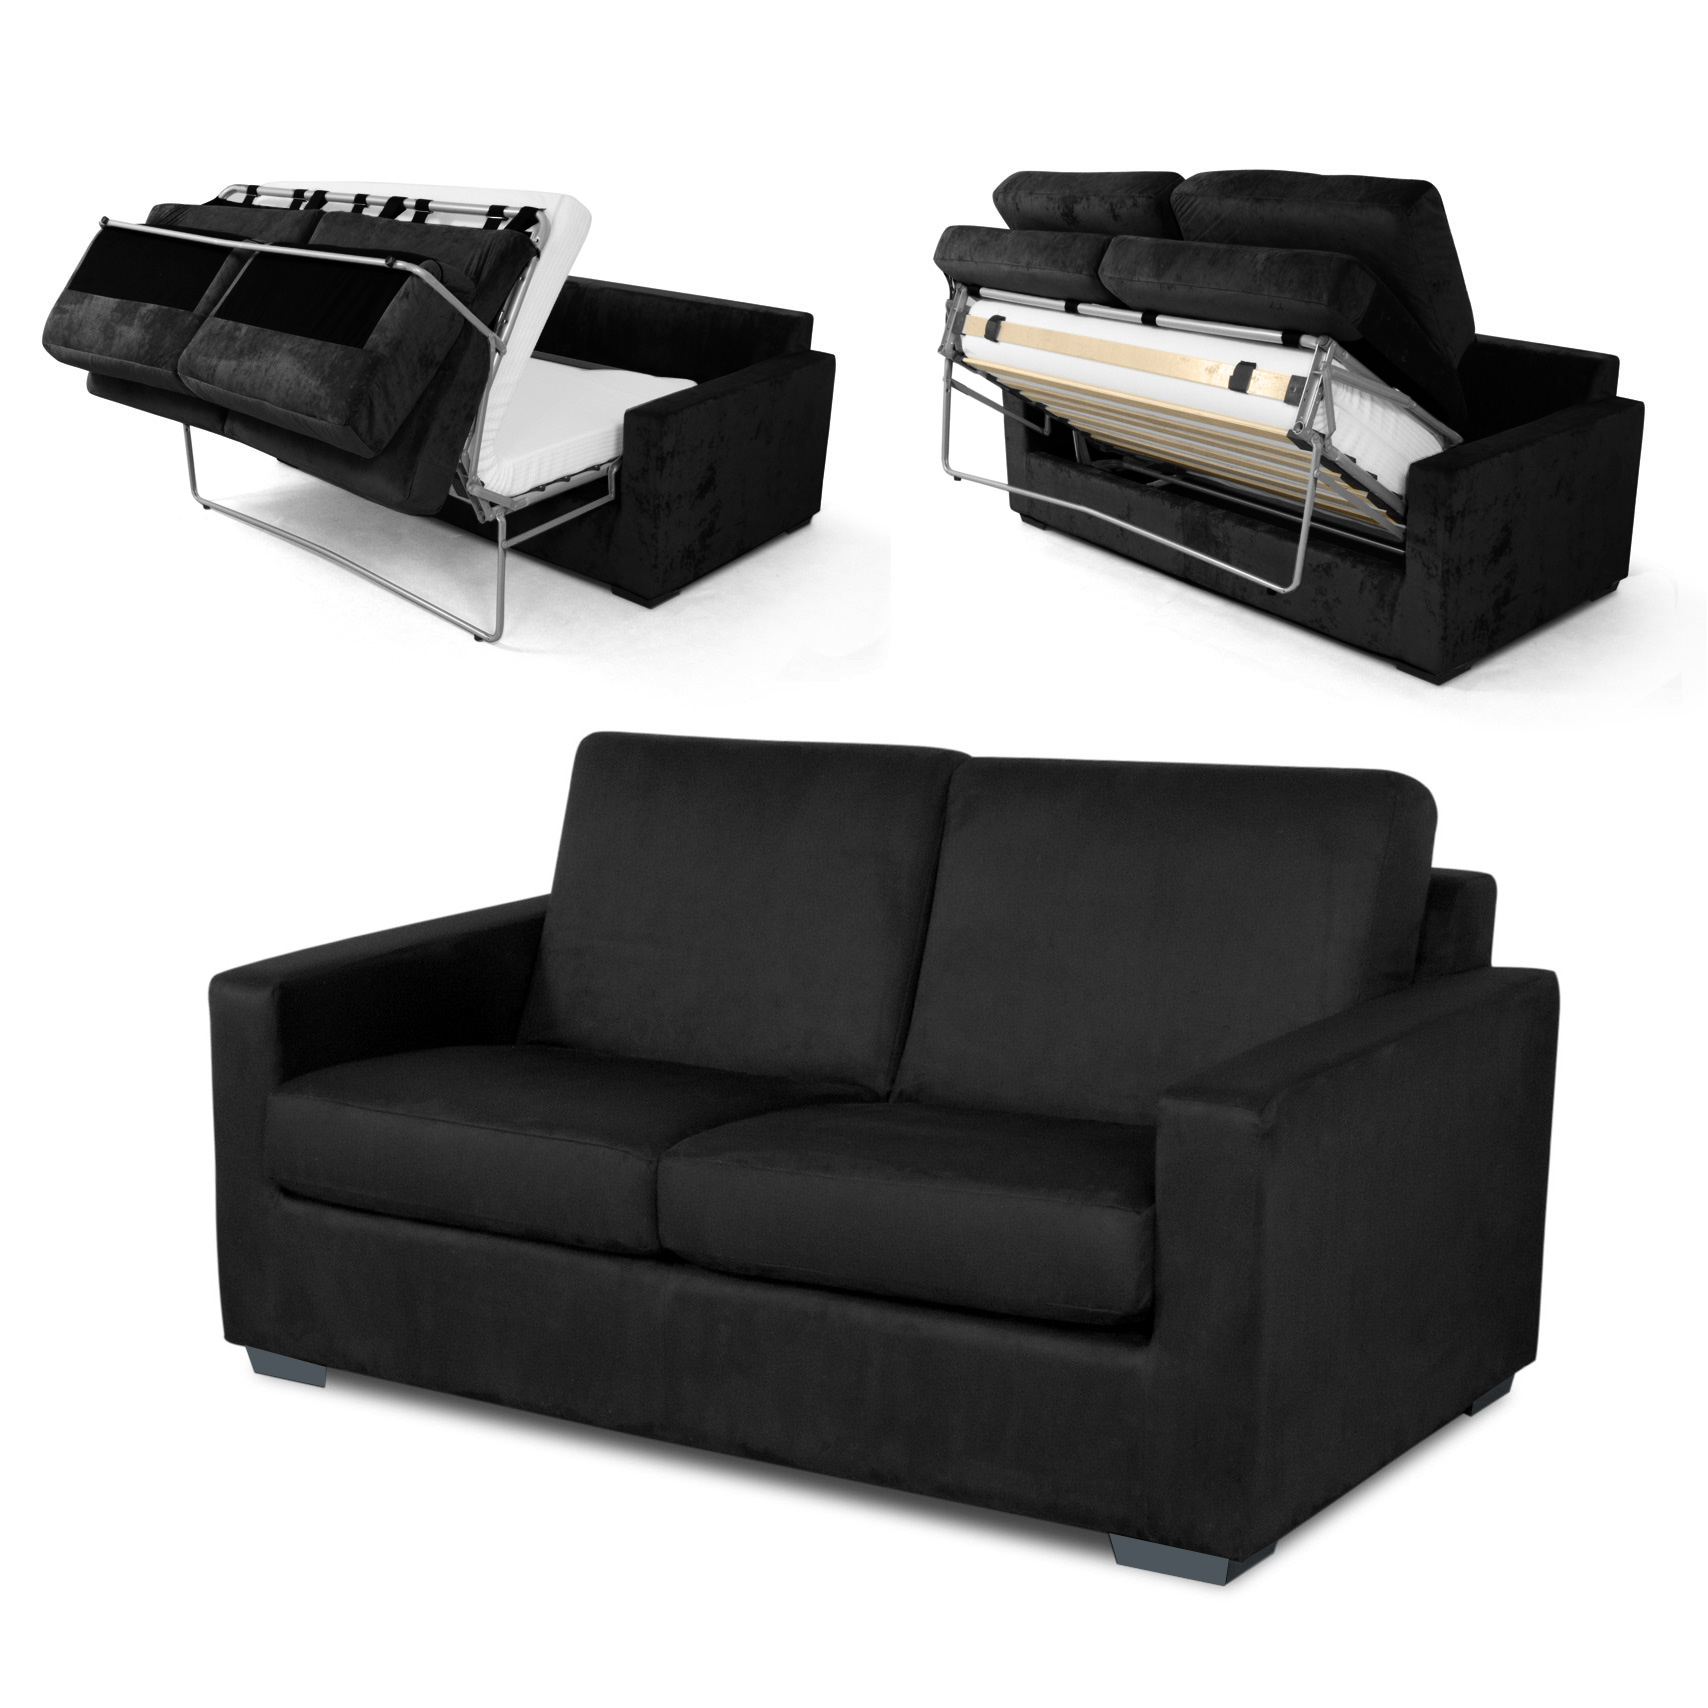 fauteuil convertible 2 places cuisine idconcept. Black Bedroom Furniture Sets. Home Design Ideas